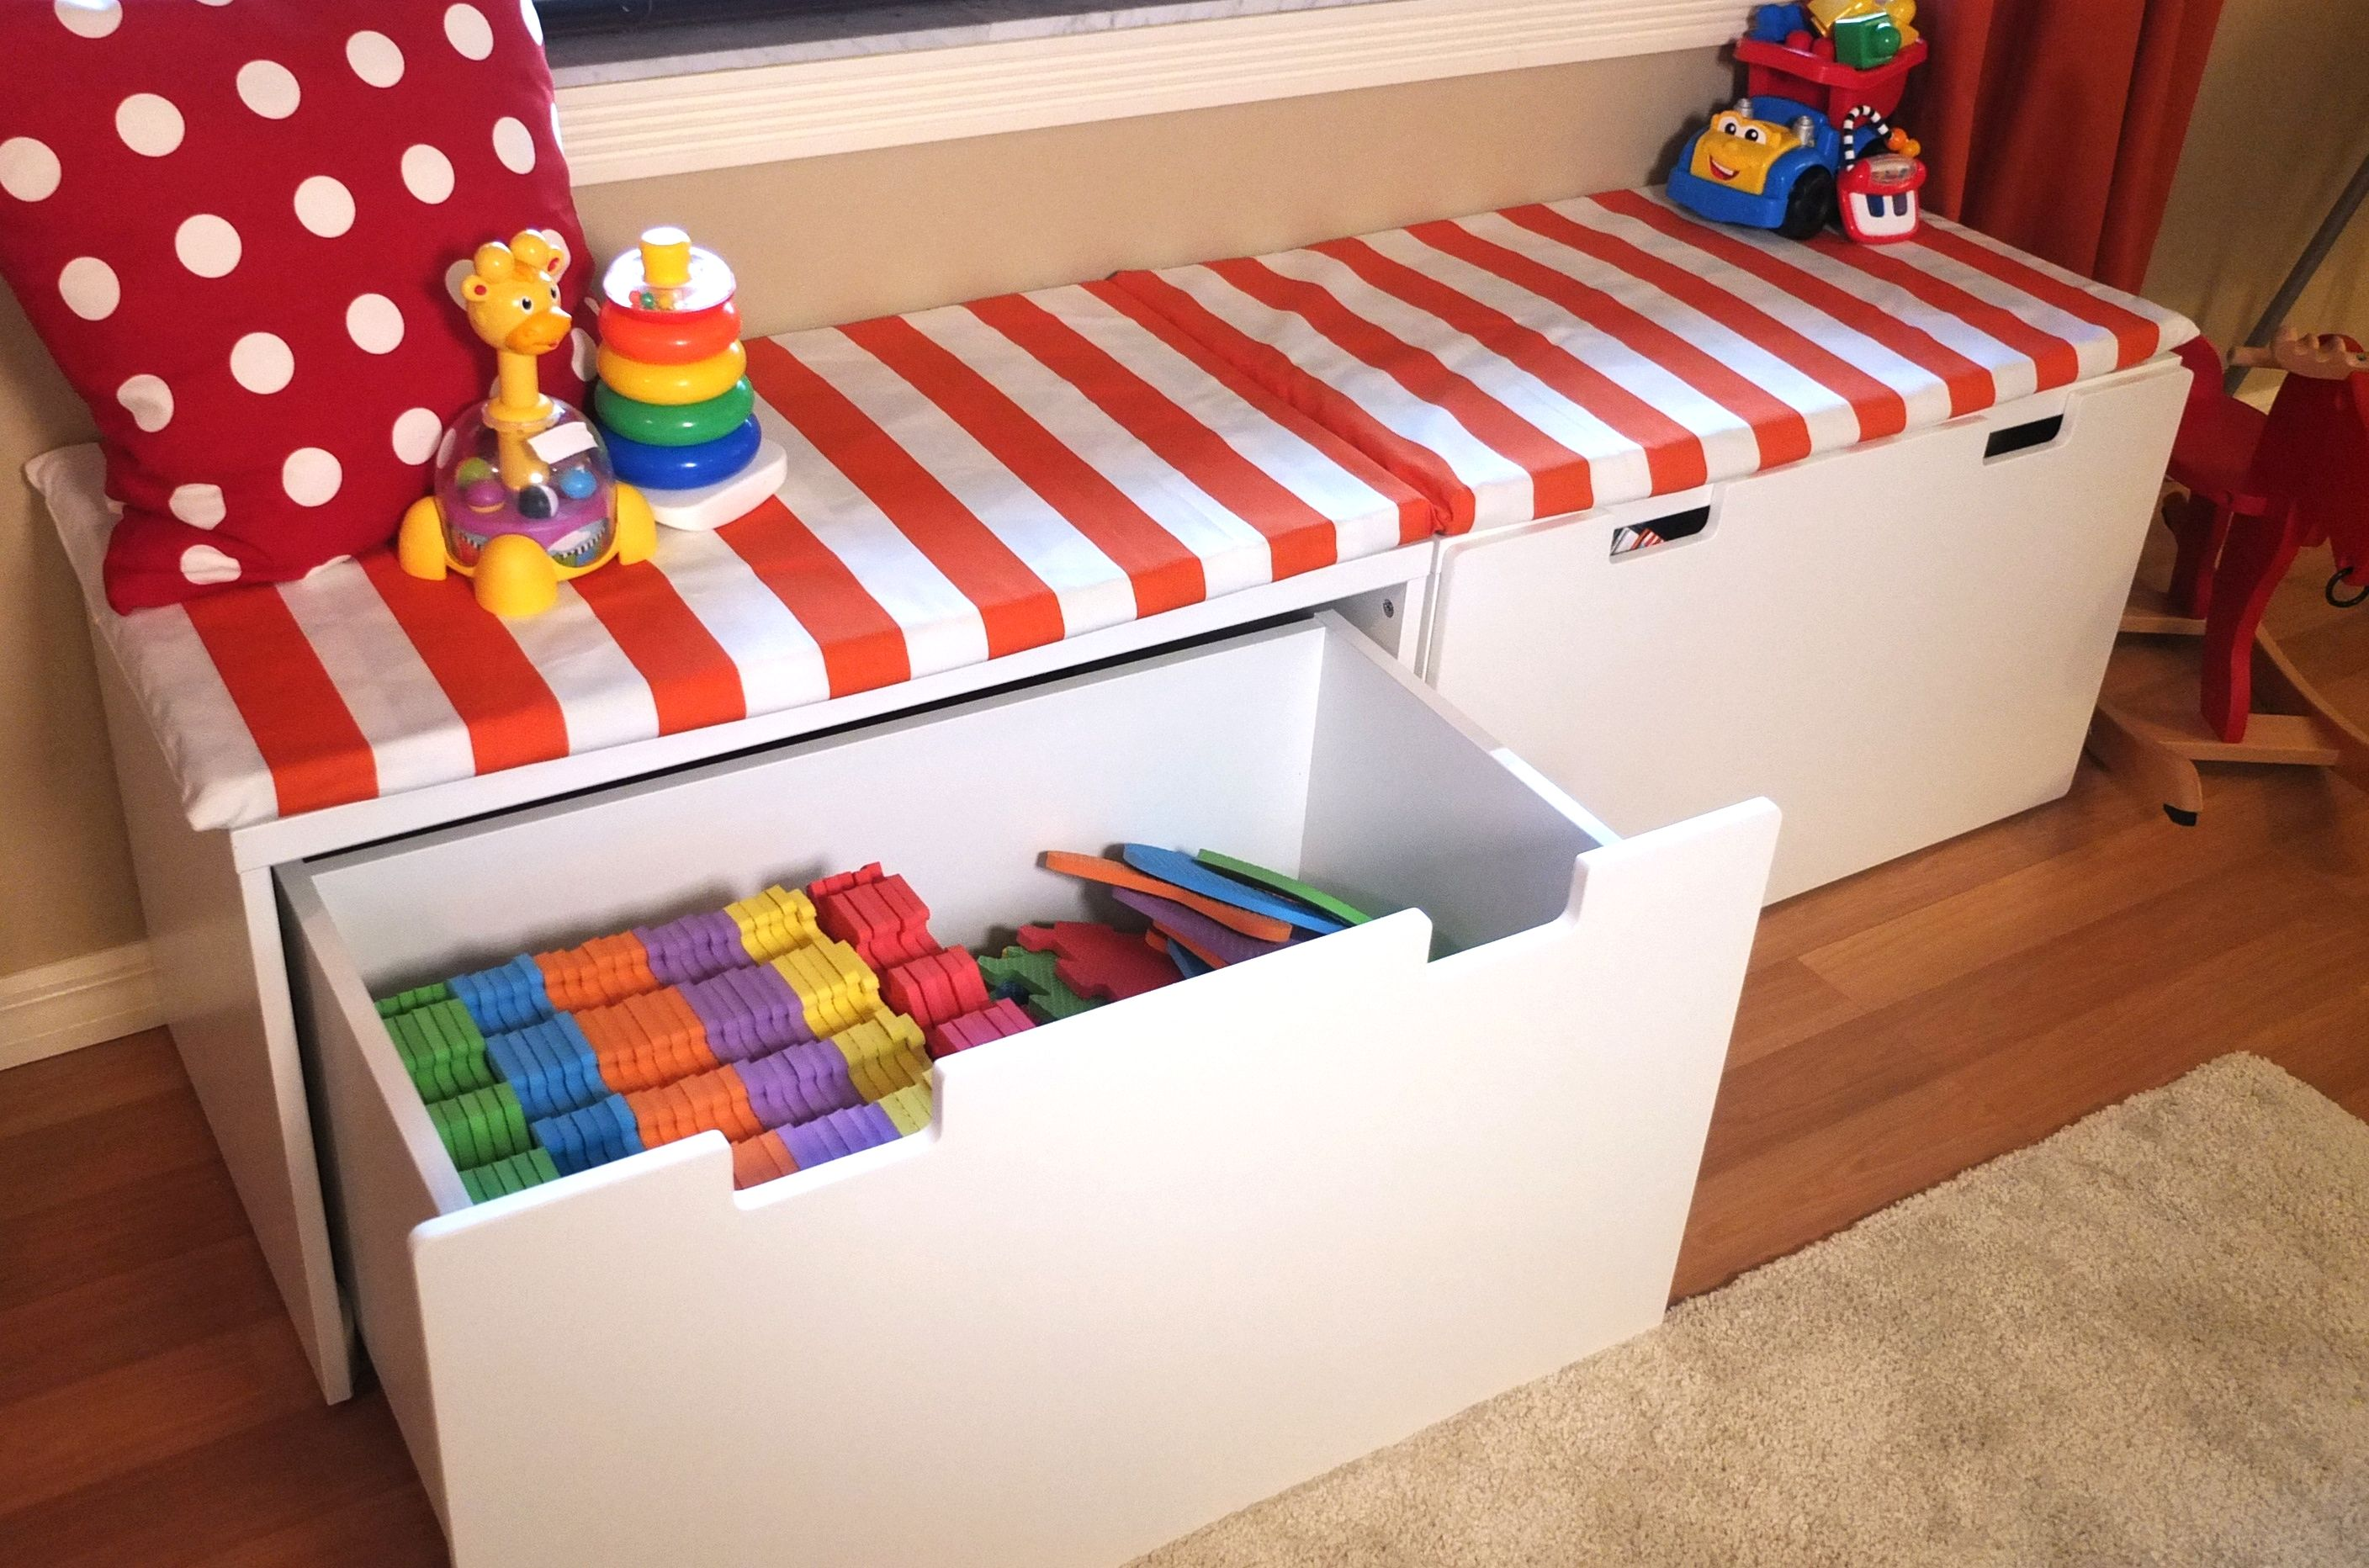 Ikea Us Furniture And Home Furnishings Toy Storage Bench Bench With Storage Storage Kids Room